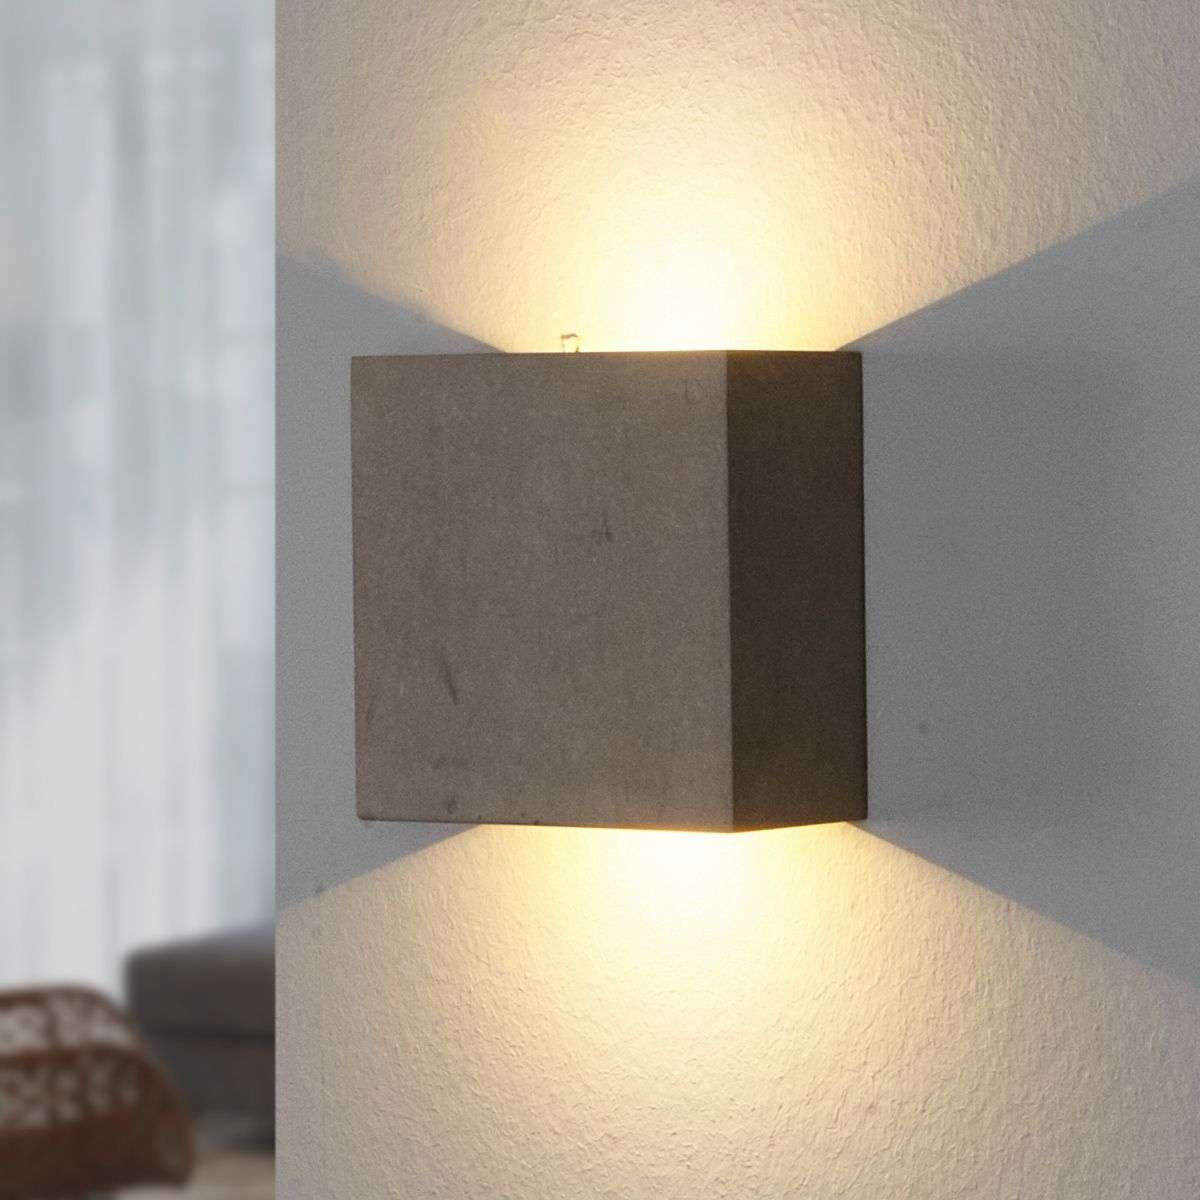 Yva - LED wall light made of concrete Lights.co.uk